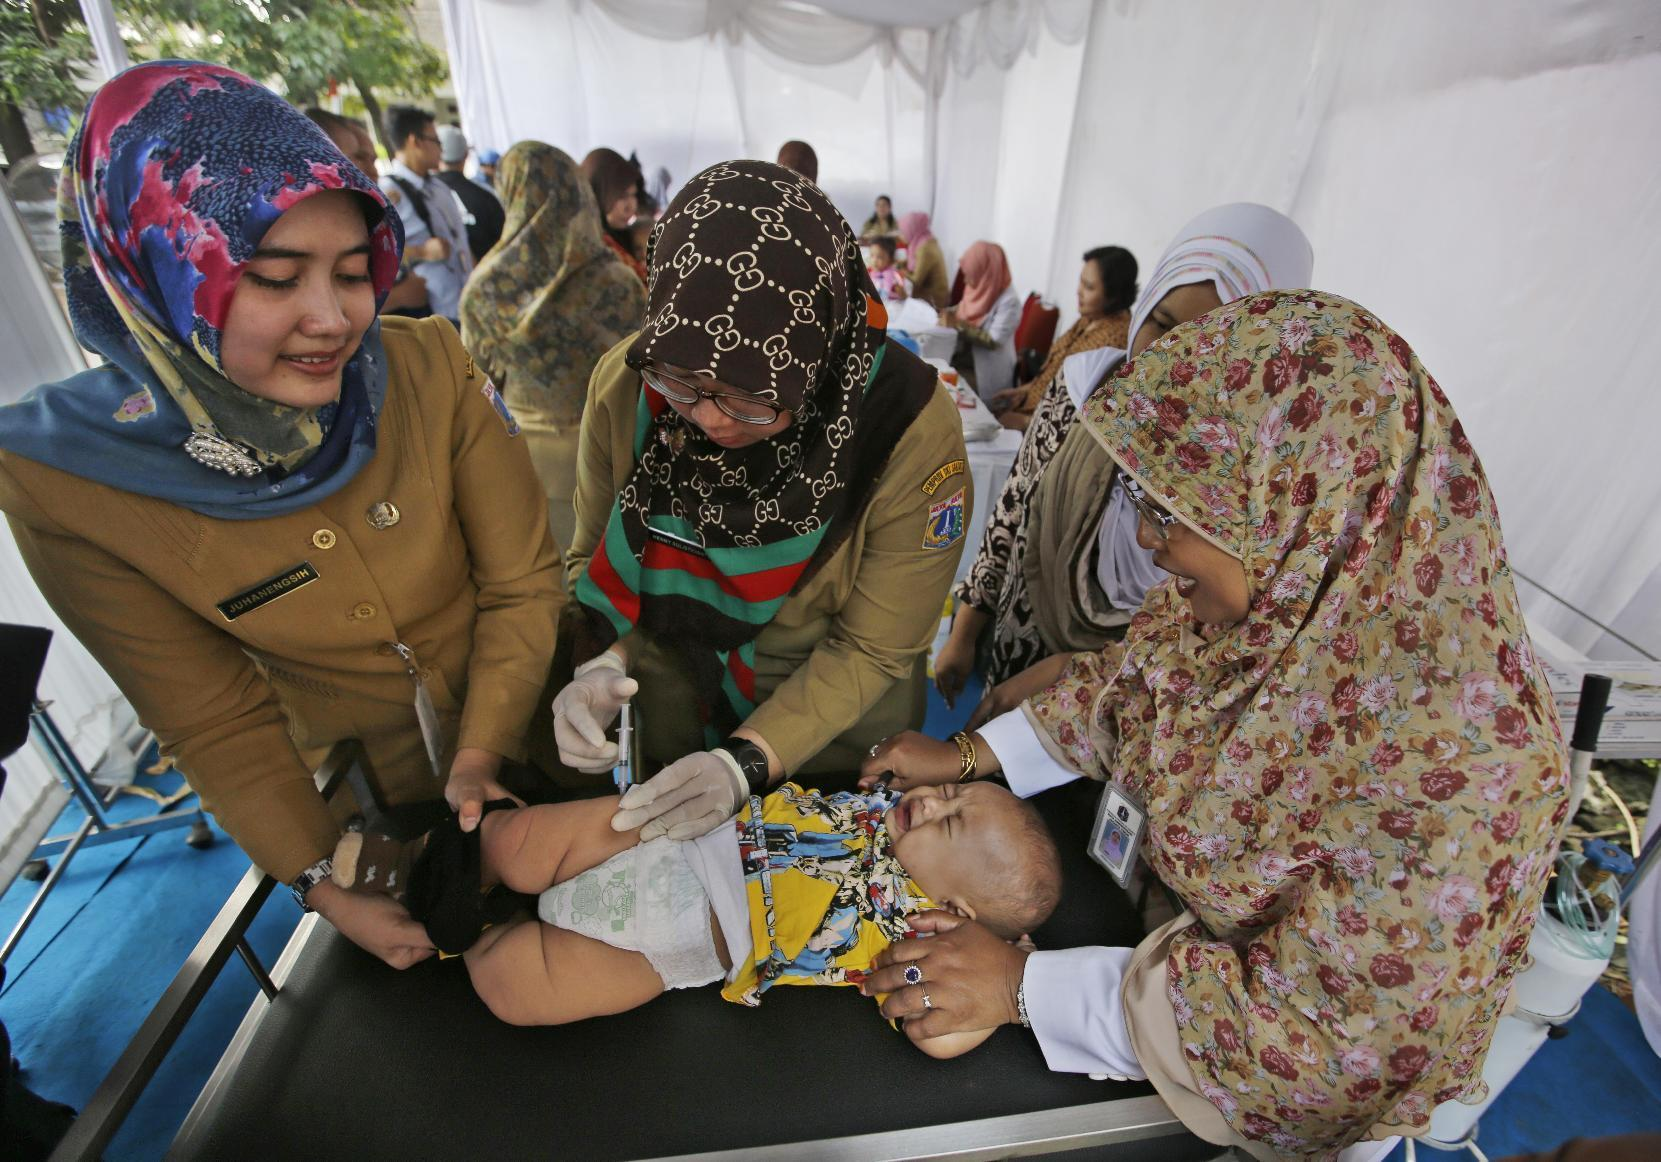 Vaccine scandal highlights Indonesian health system woes